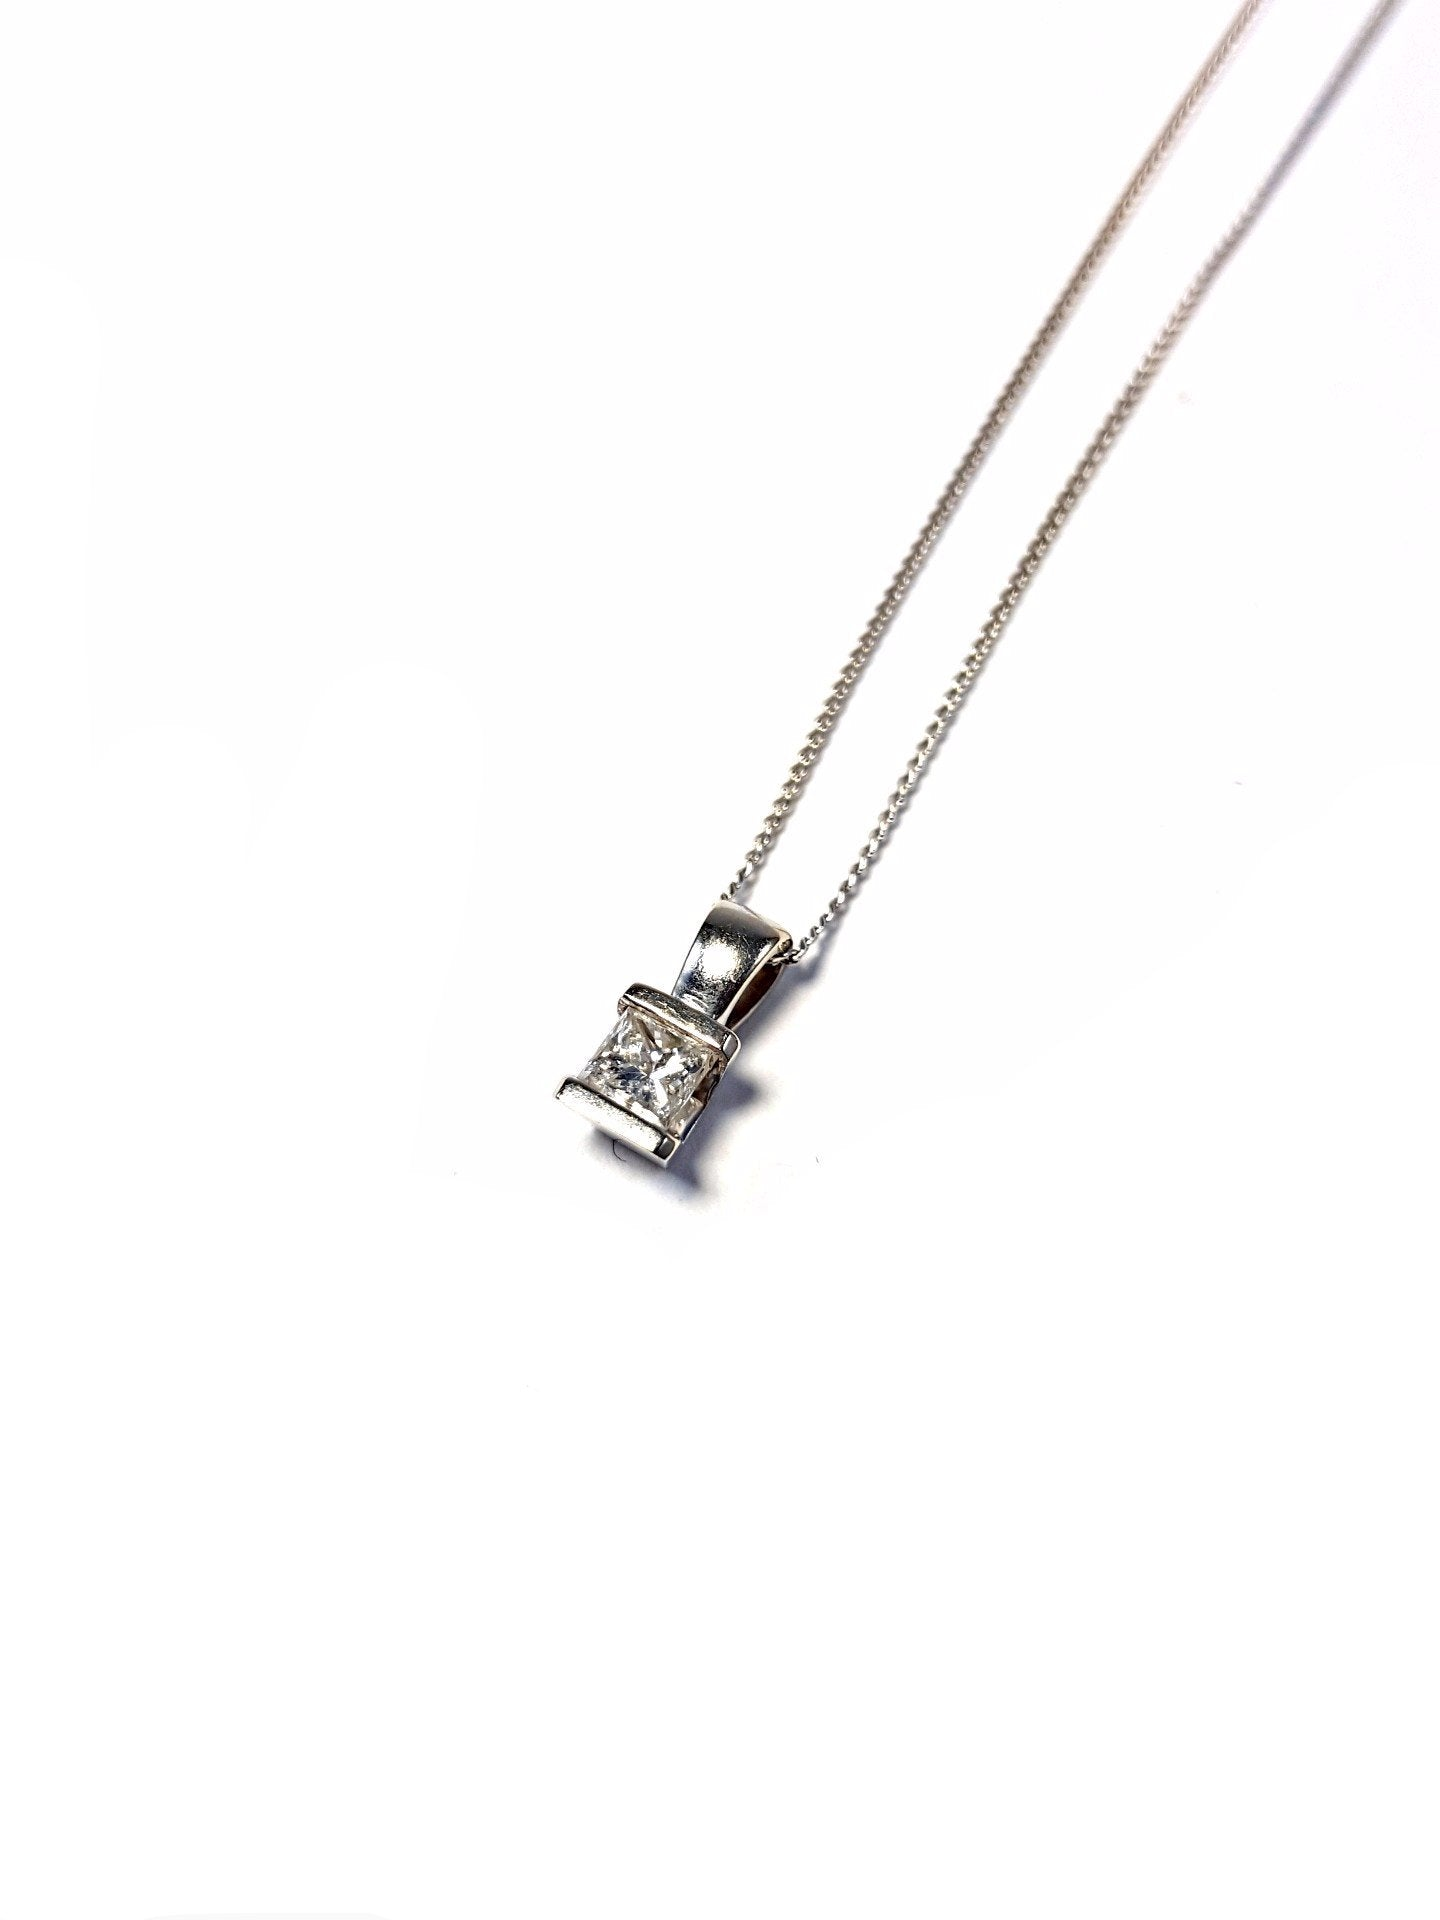 Princess Cut Diamond Pendant Necklace